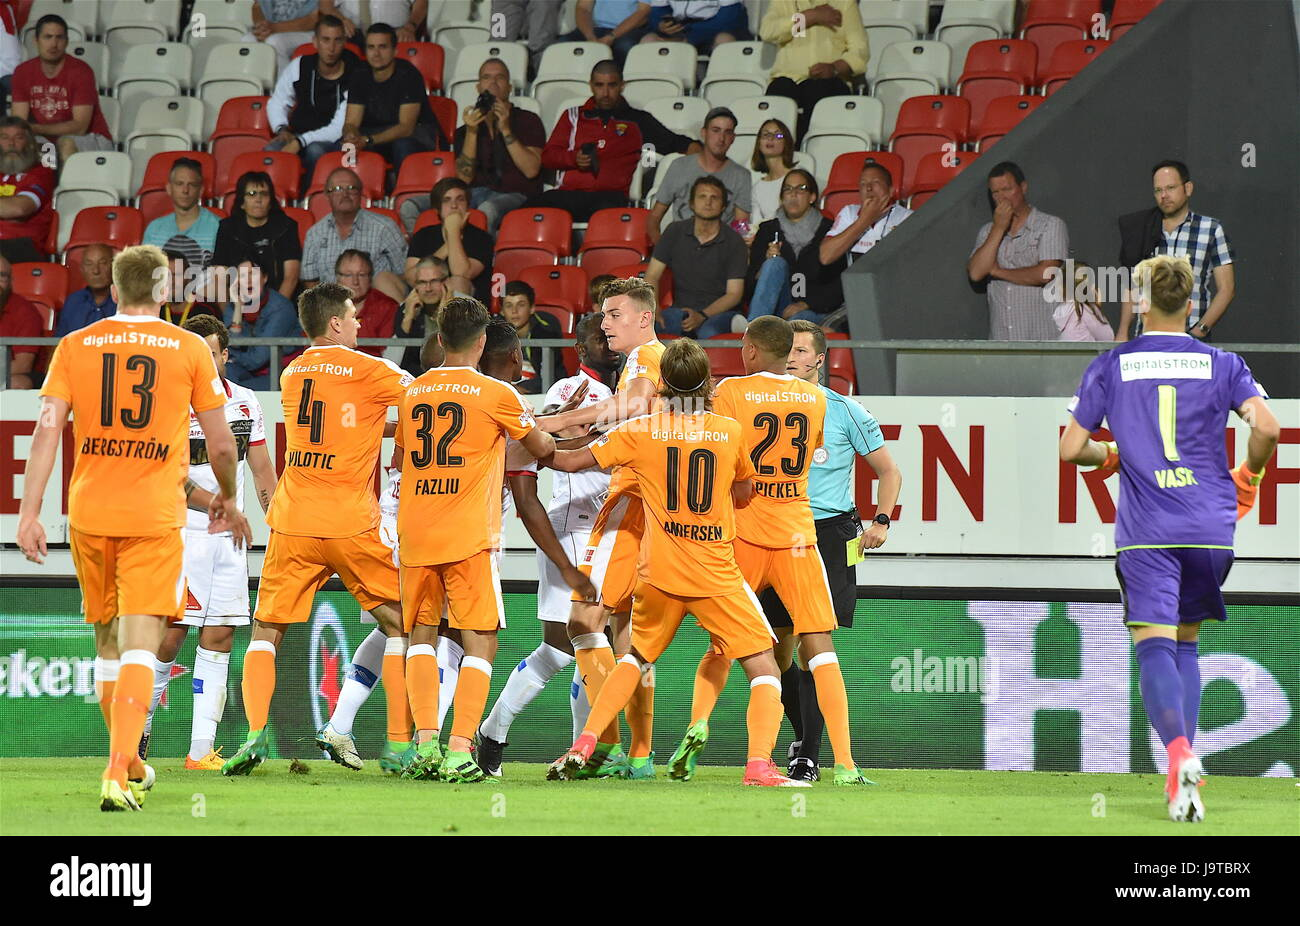 Sion, 02.06.2017, Football Raiffeisen Super League, FC Sion - Grasshoppers Club Zurich, very tense match at the - Stock Image